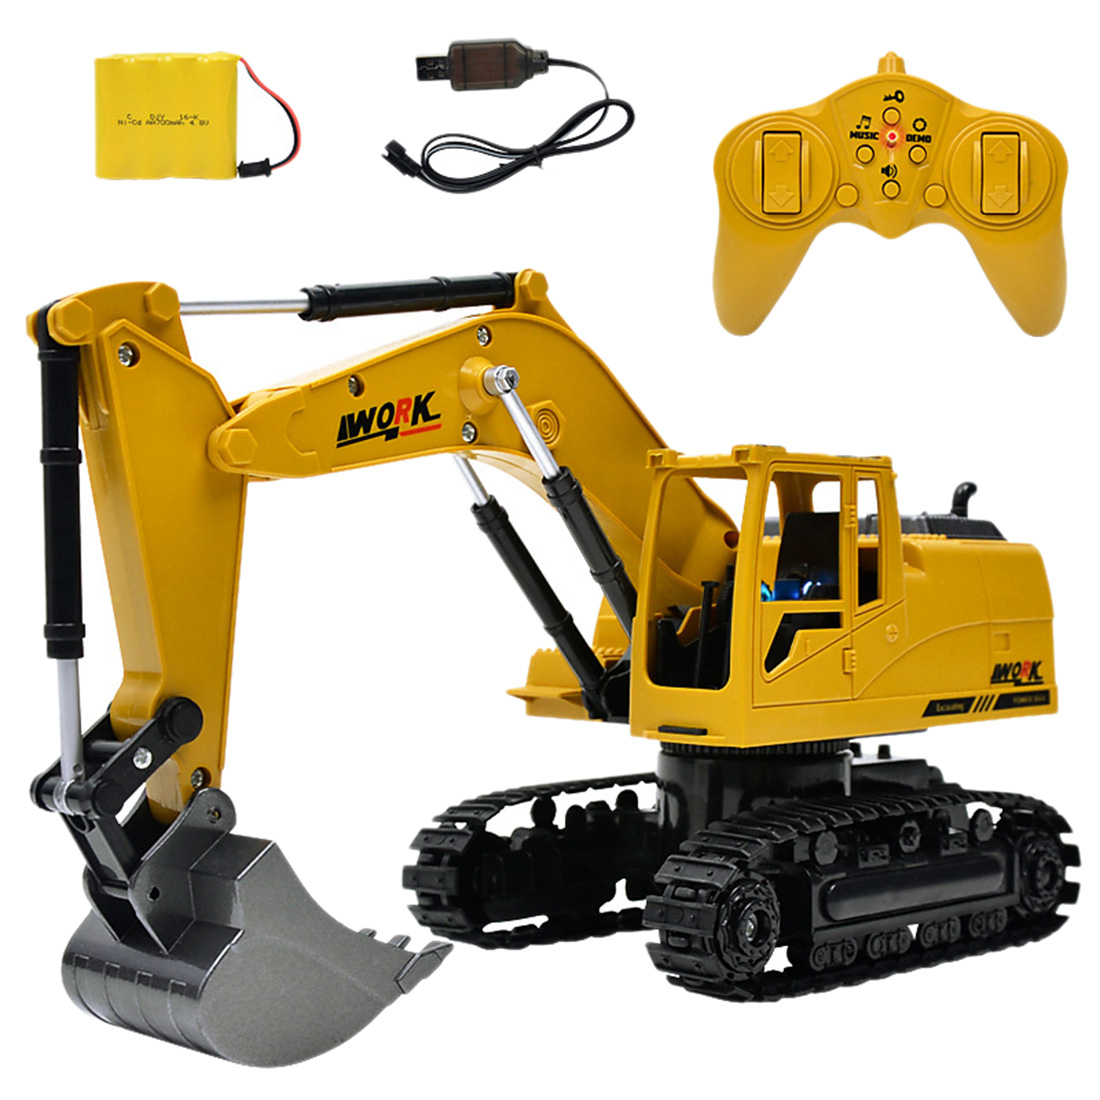 1:24 2.4G RC 8 Channel Crawler Excavator Shovel Crawler Navvy Model Construction Vehicle Toy Simulated Excavator Gift For Kids1:24 2.4G RC 8 Channel Crawler Excavator Shovel Crawler Navvy Model Construction Vehicle Toy Simulated Excavator Gift For Kids